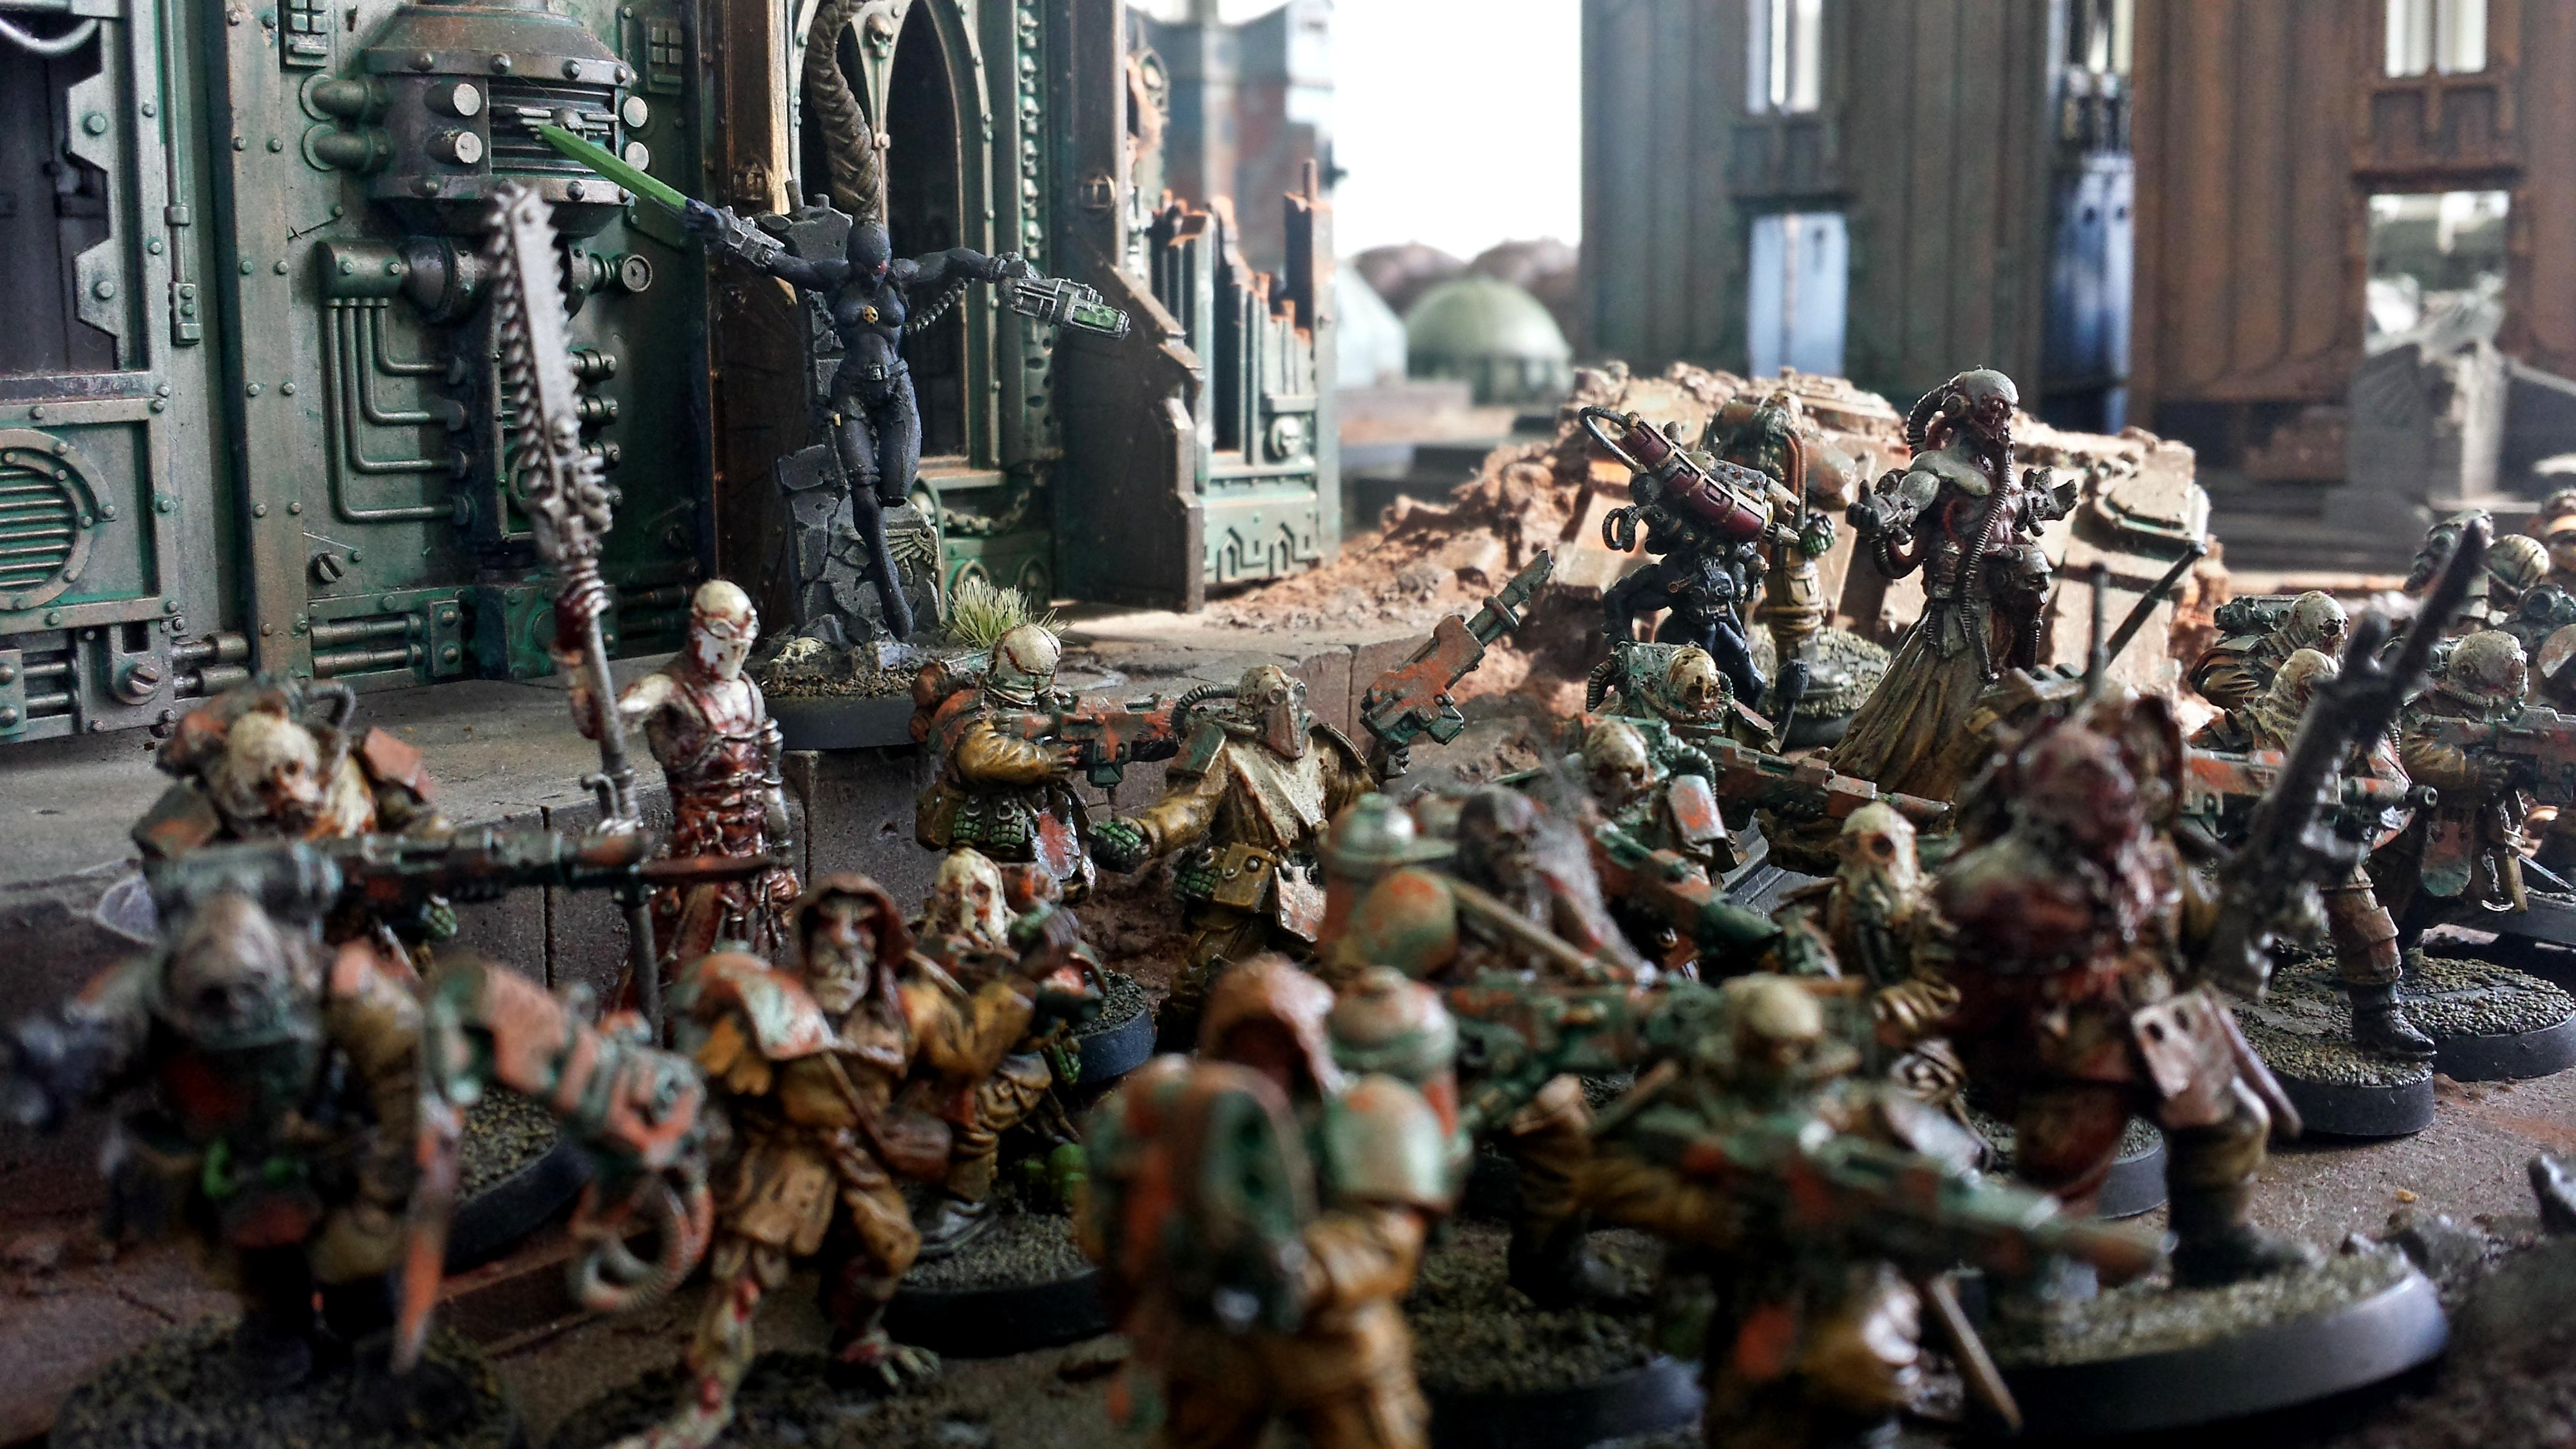 Apostles Of Contagion, Assassins, Chaos, Forge World, Nurgle, Renegades, Warhammer 40,000